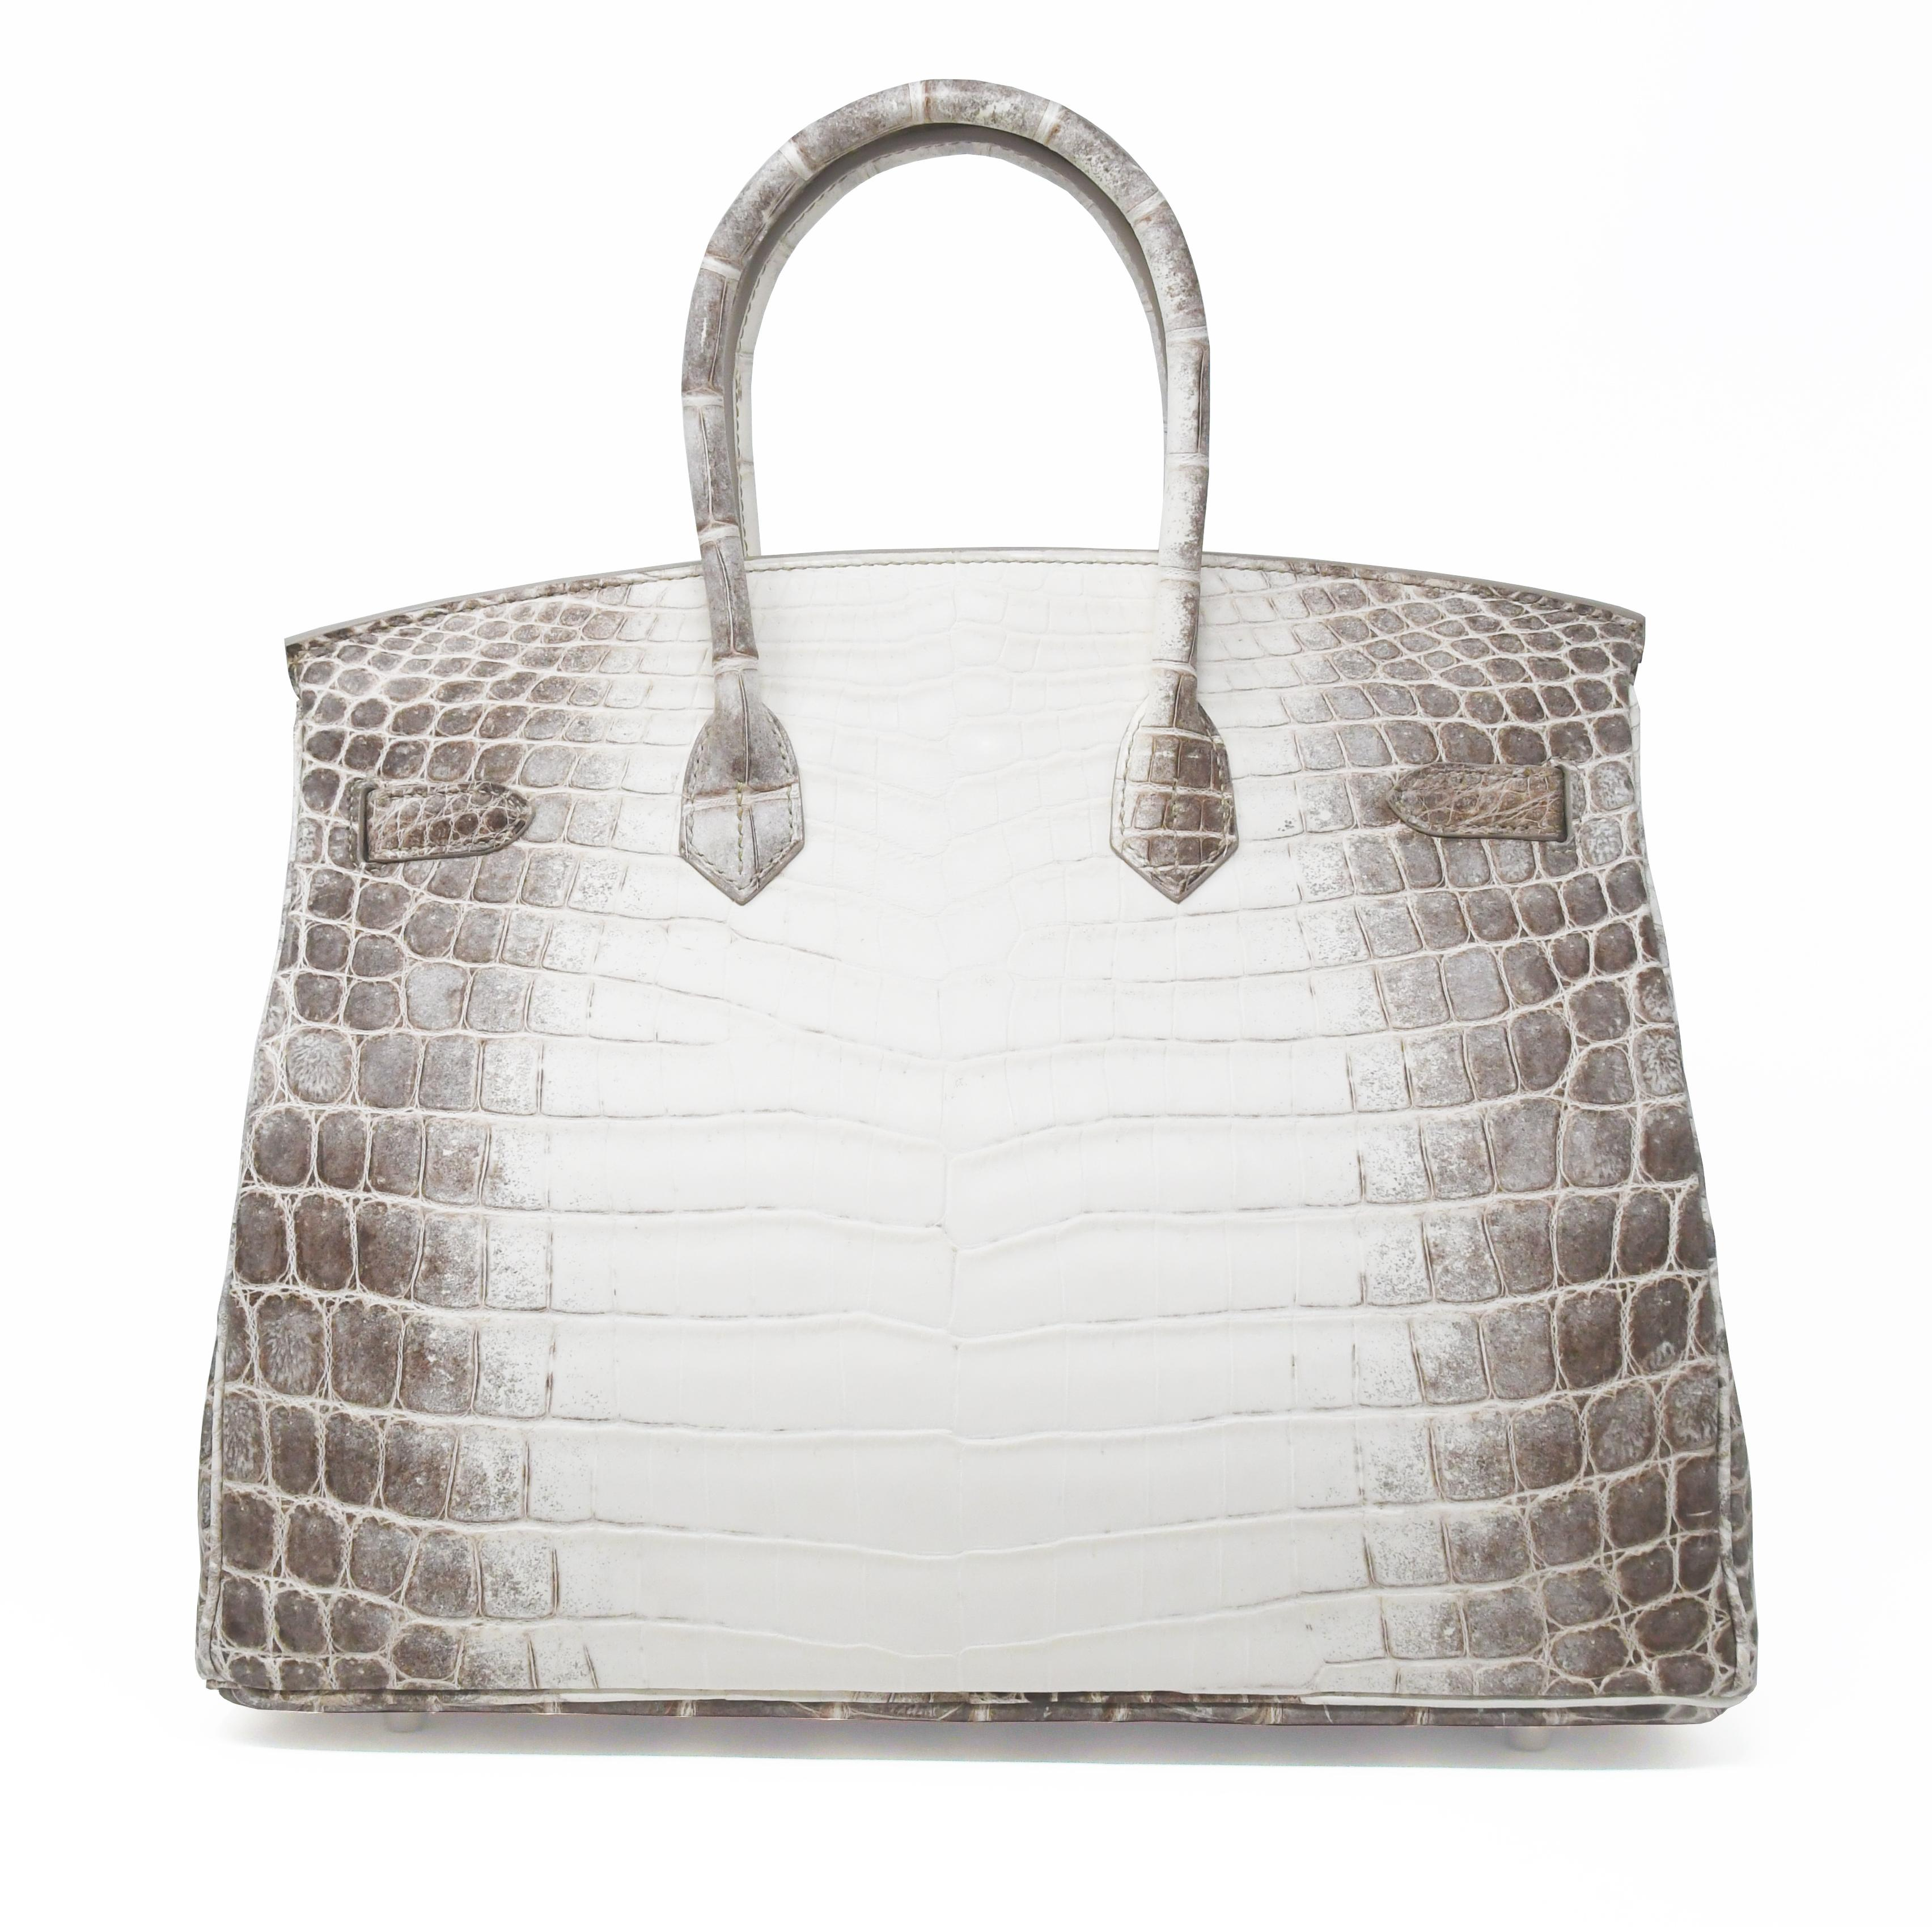 02d8f6854735 ... sweden the rare and coveted hermes himalayan birkin is the most sought  after handbag in the